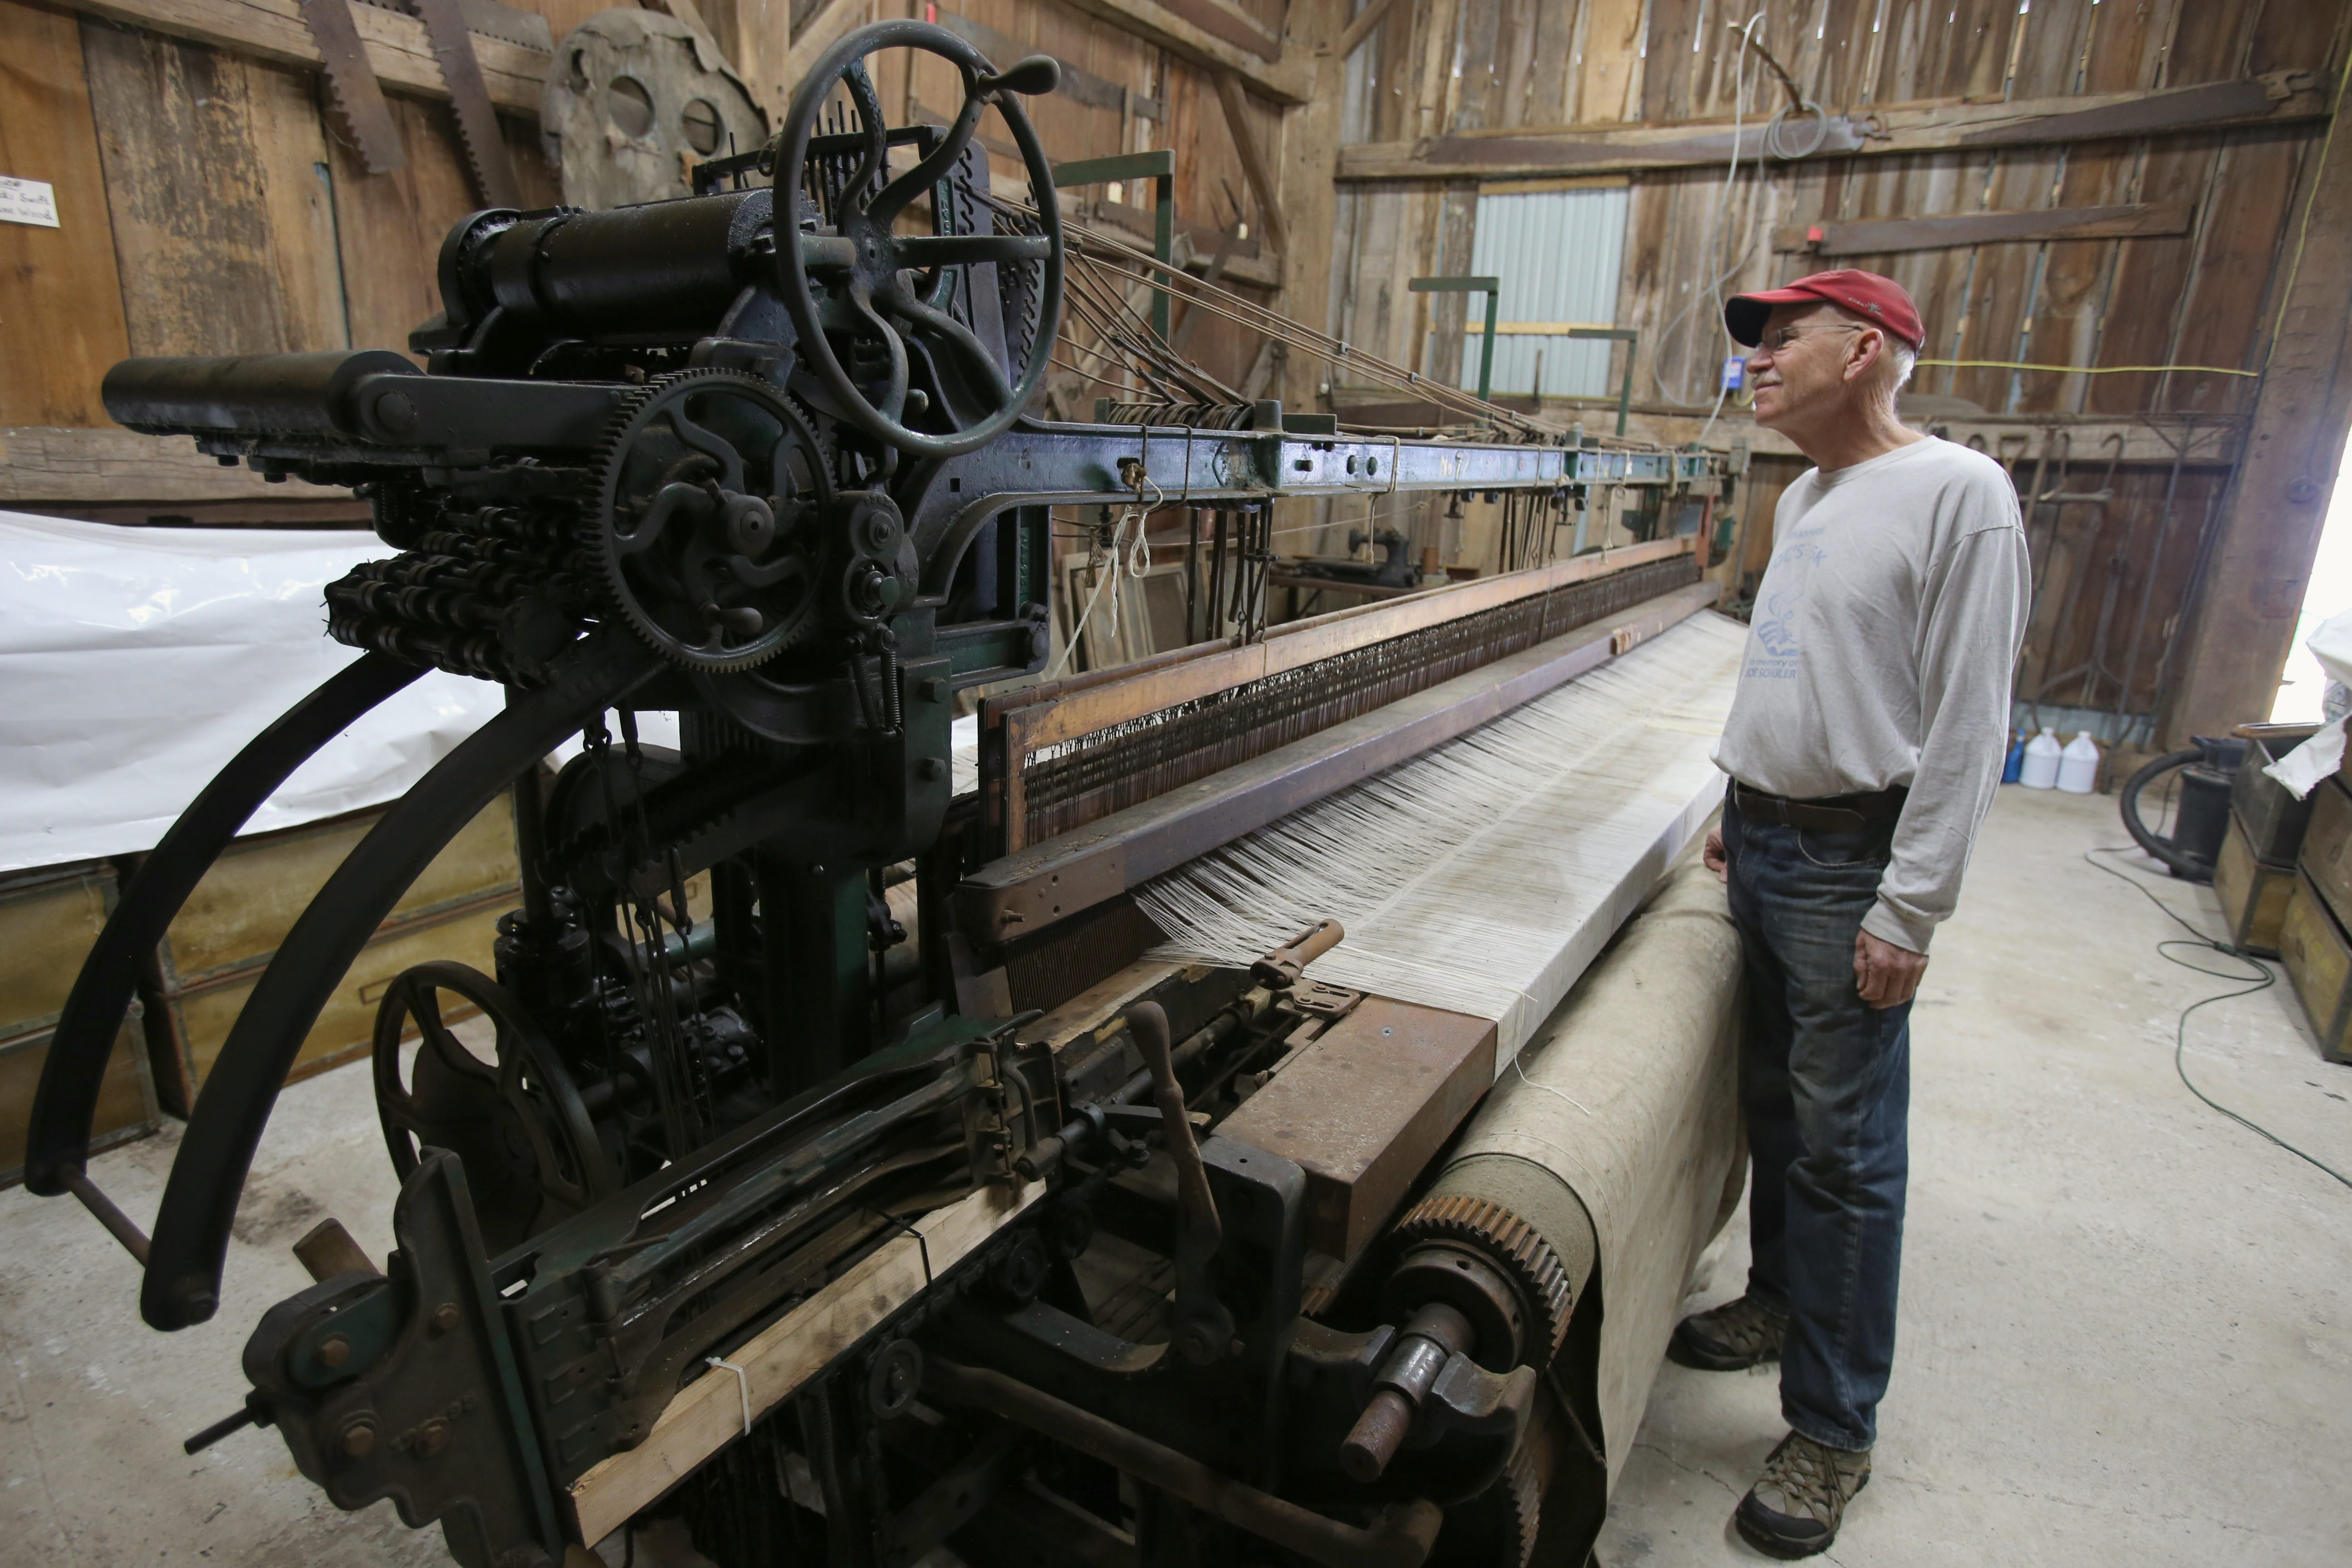 Bill Neidlinger, a Historical Society board member at the Town of Newfane Historical Museum, looks over a 1933 Crompton & Knowles steel loom in the museum.